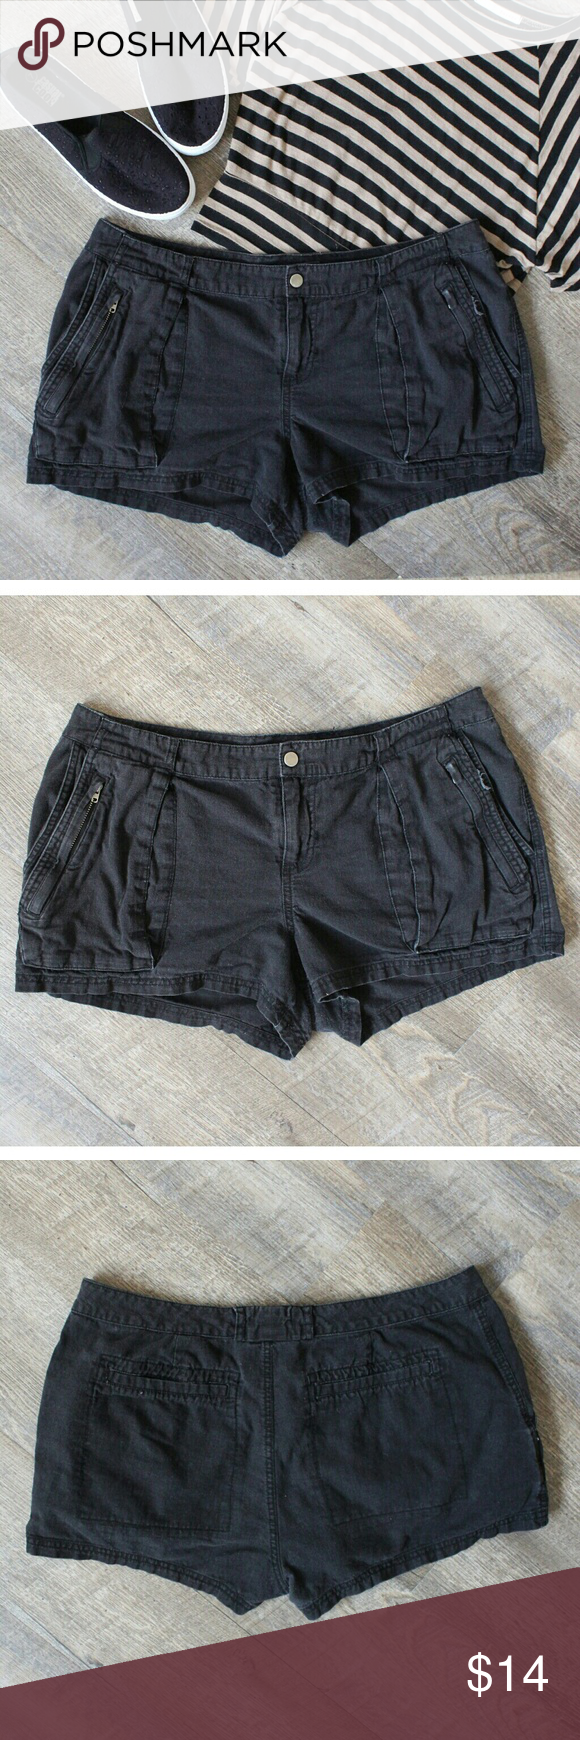 41e3f34928d24f Converse One Star Black Shorts Comfortable black shorts with pockets and  zippers. Great for this summer. In GUC has some fading and loose threading  on side ...